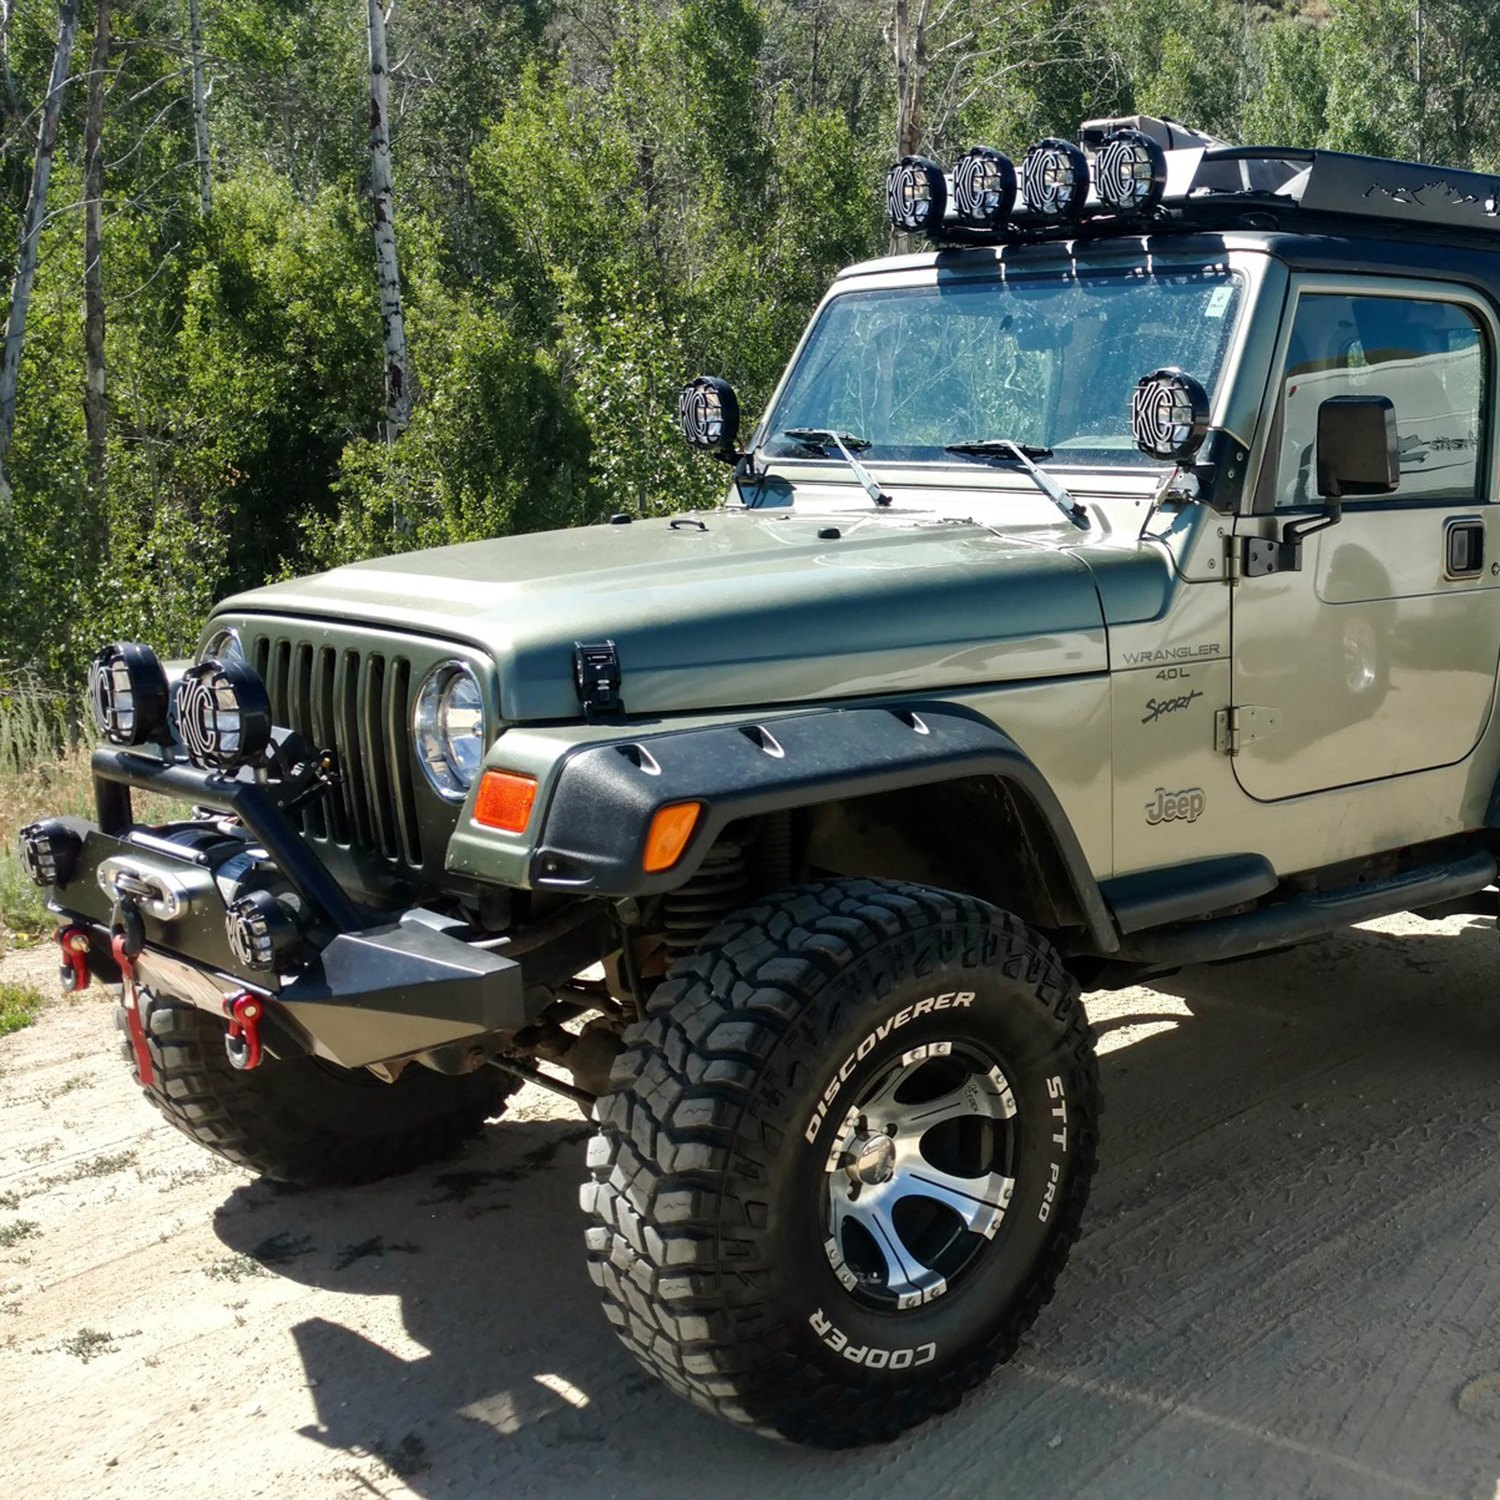 Jeep Kc Light Wiring Diagram Free Picture | Wiring Diagram Kc Headlights Wiring Diagram on